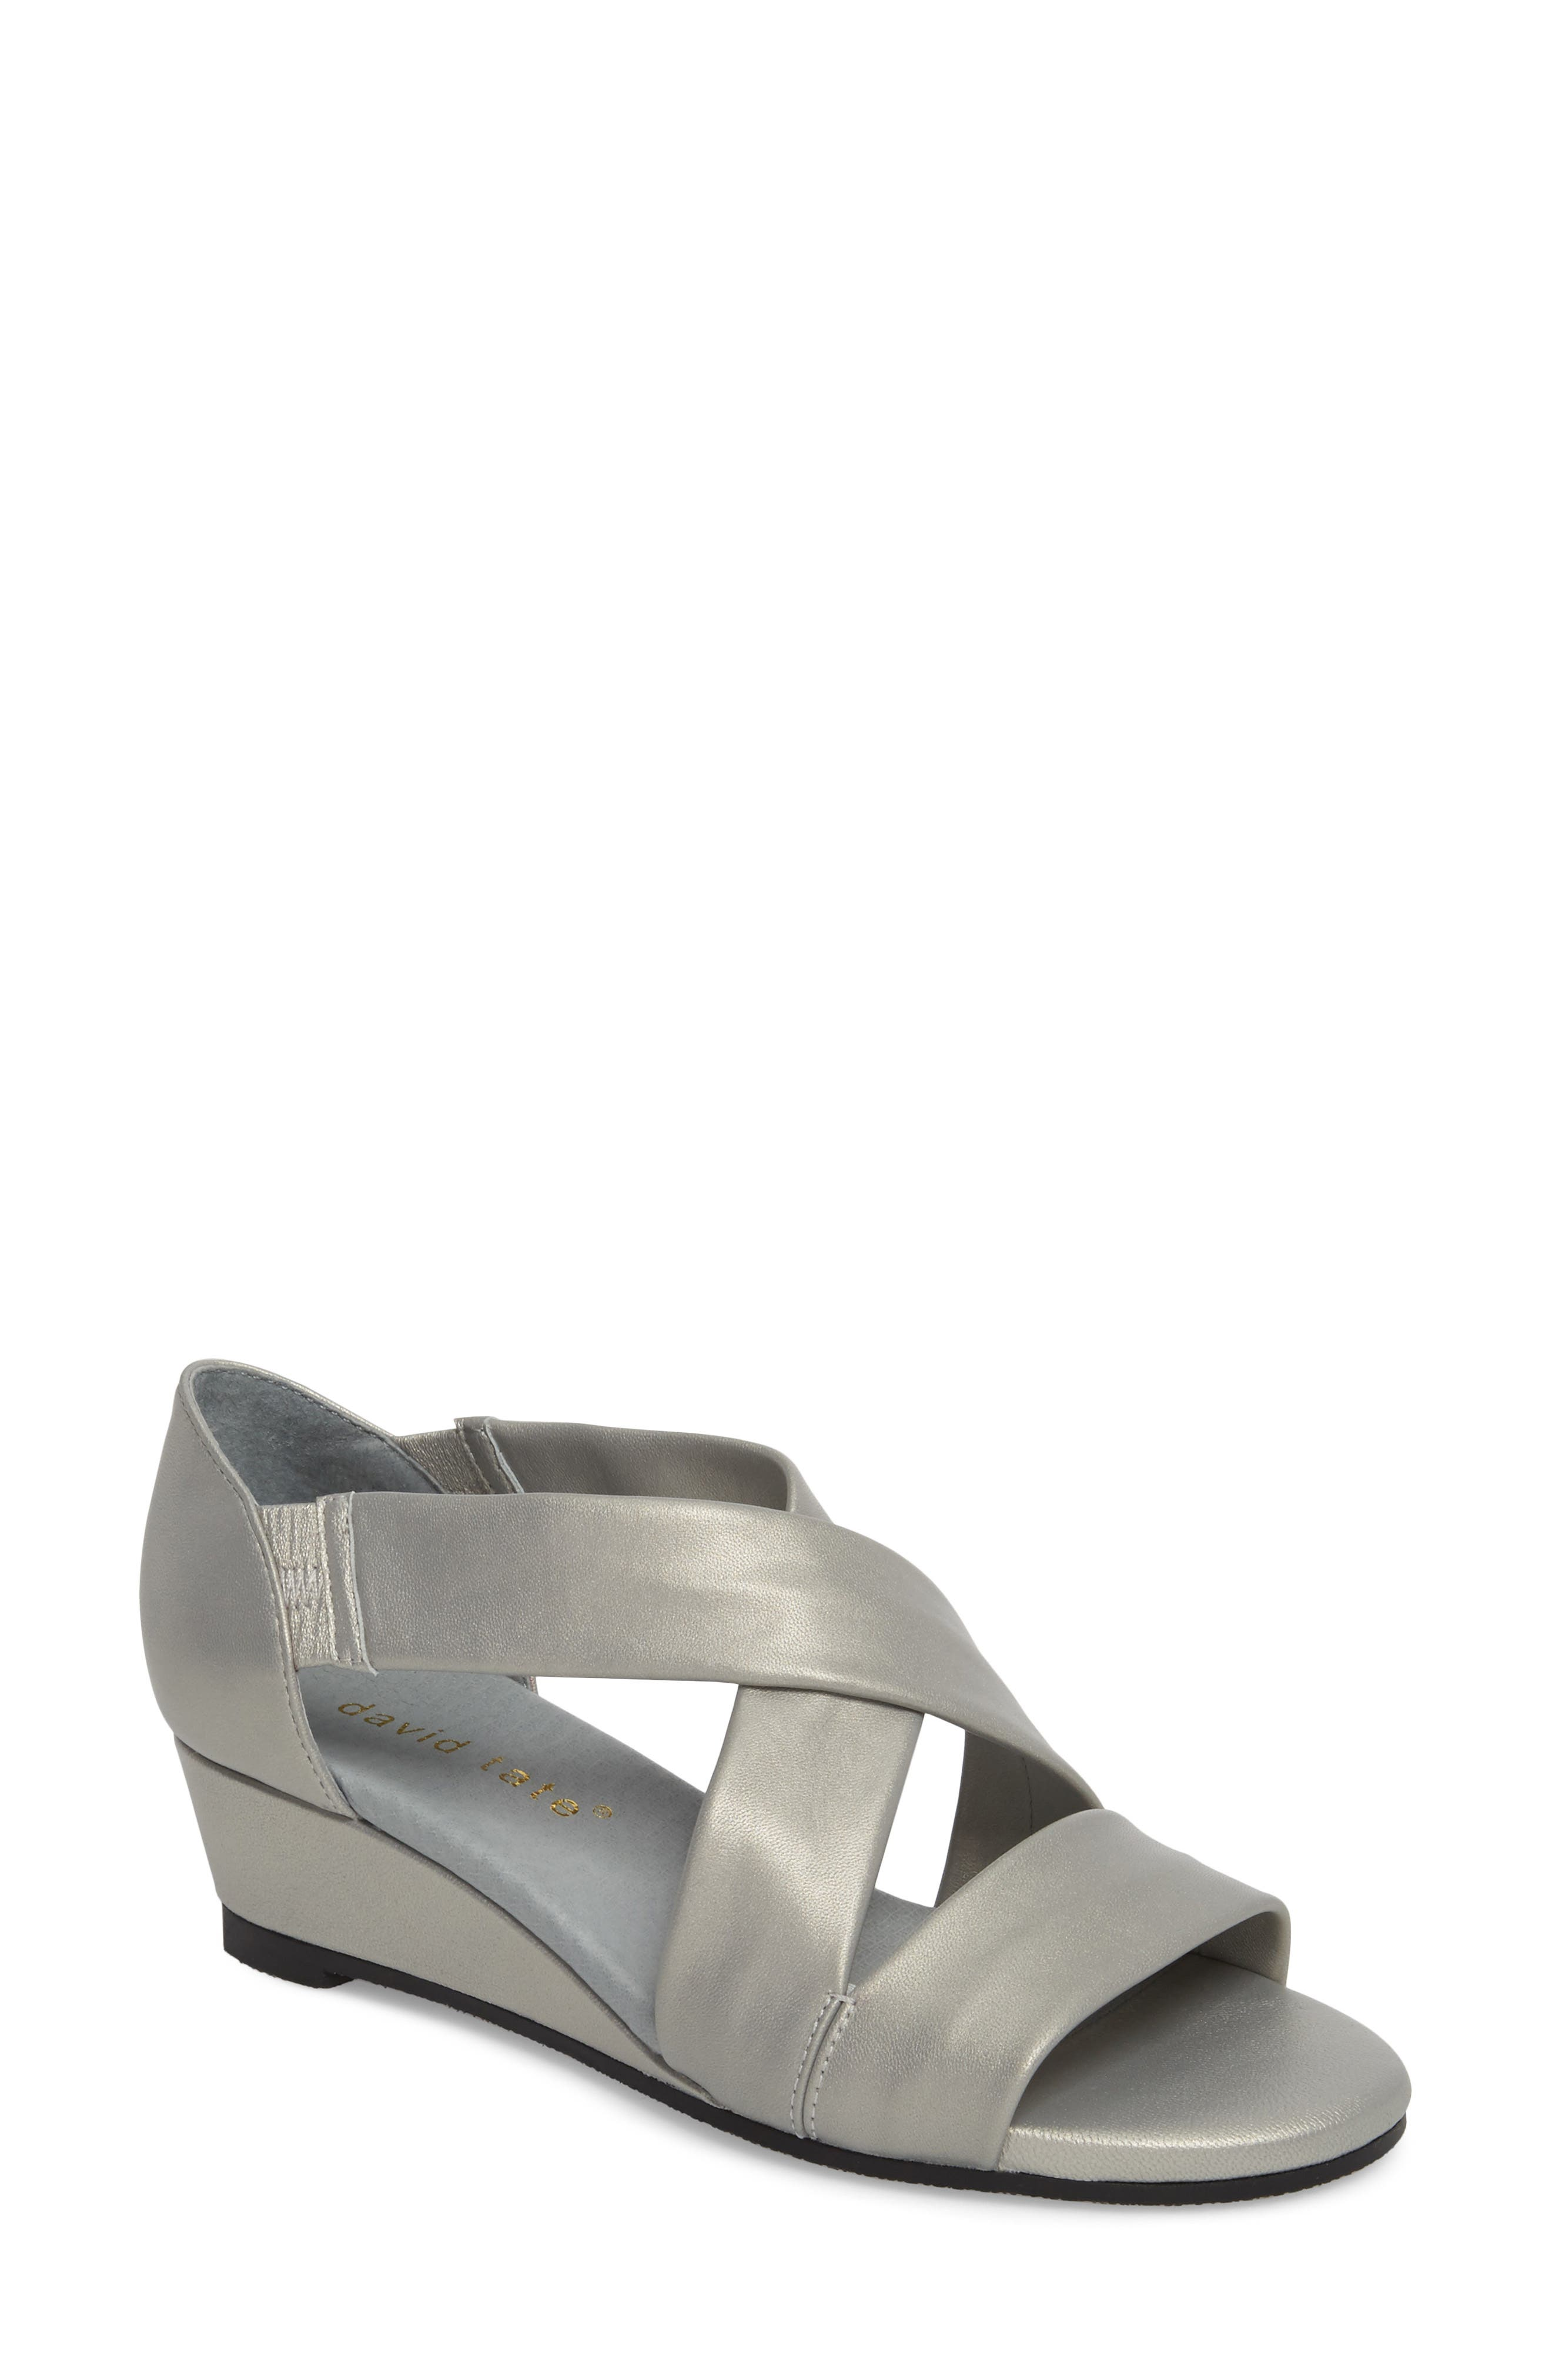 David Tate Swell Cross Strap Wedge Sandal (Women)